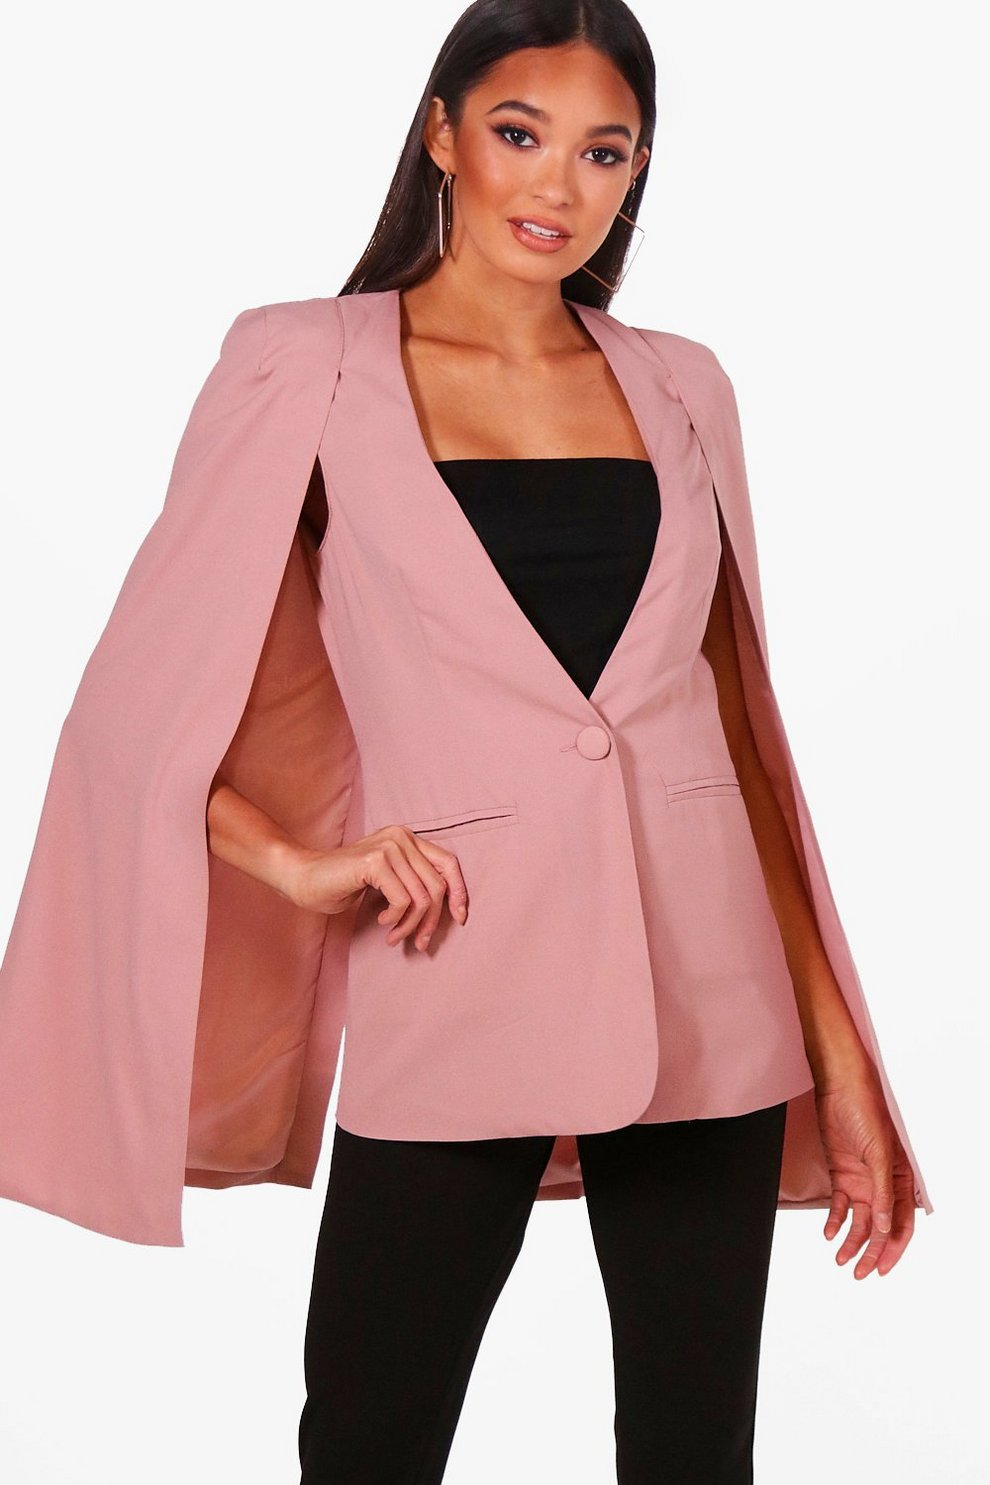 Boohoo Boutique Cape Blazer Order Big Discount For Sale Pre Order Online Nicekicks Sale Online Cheap Sale Amazing Price iWsqwoy070